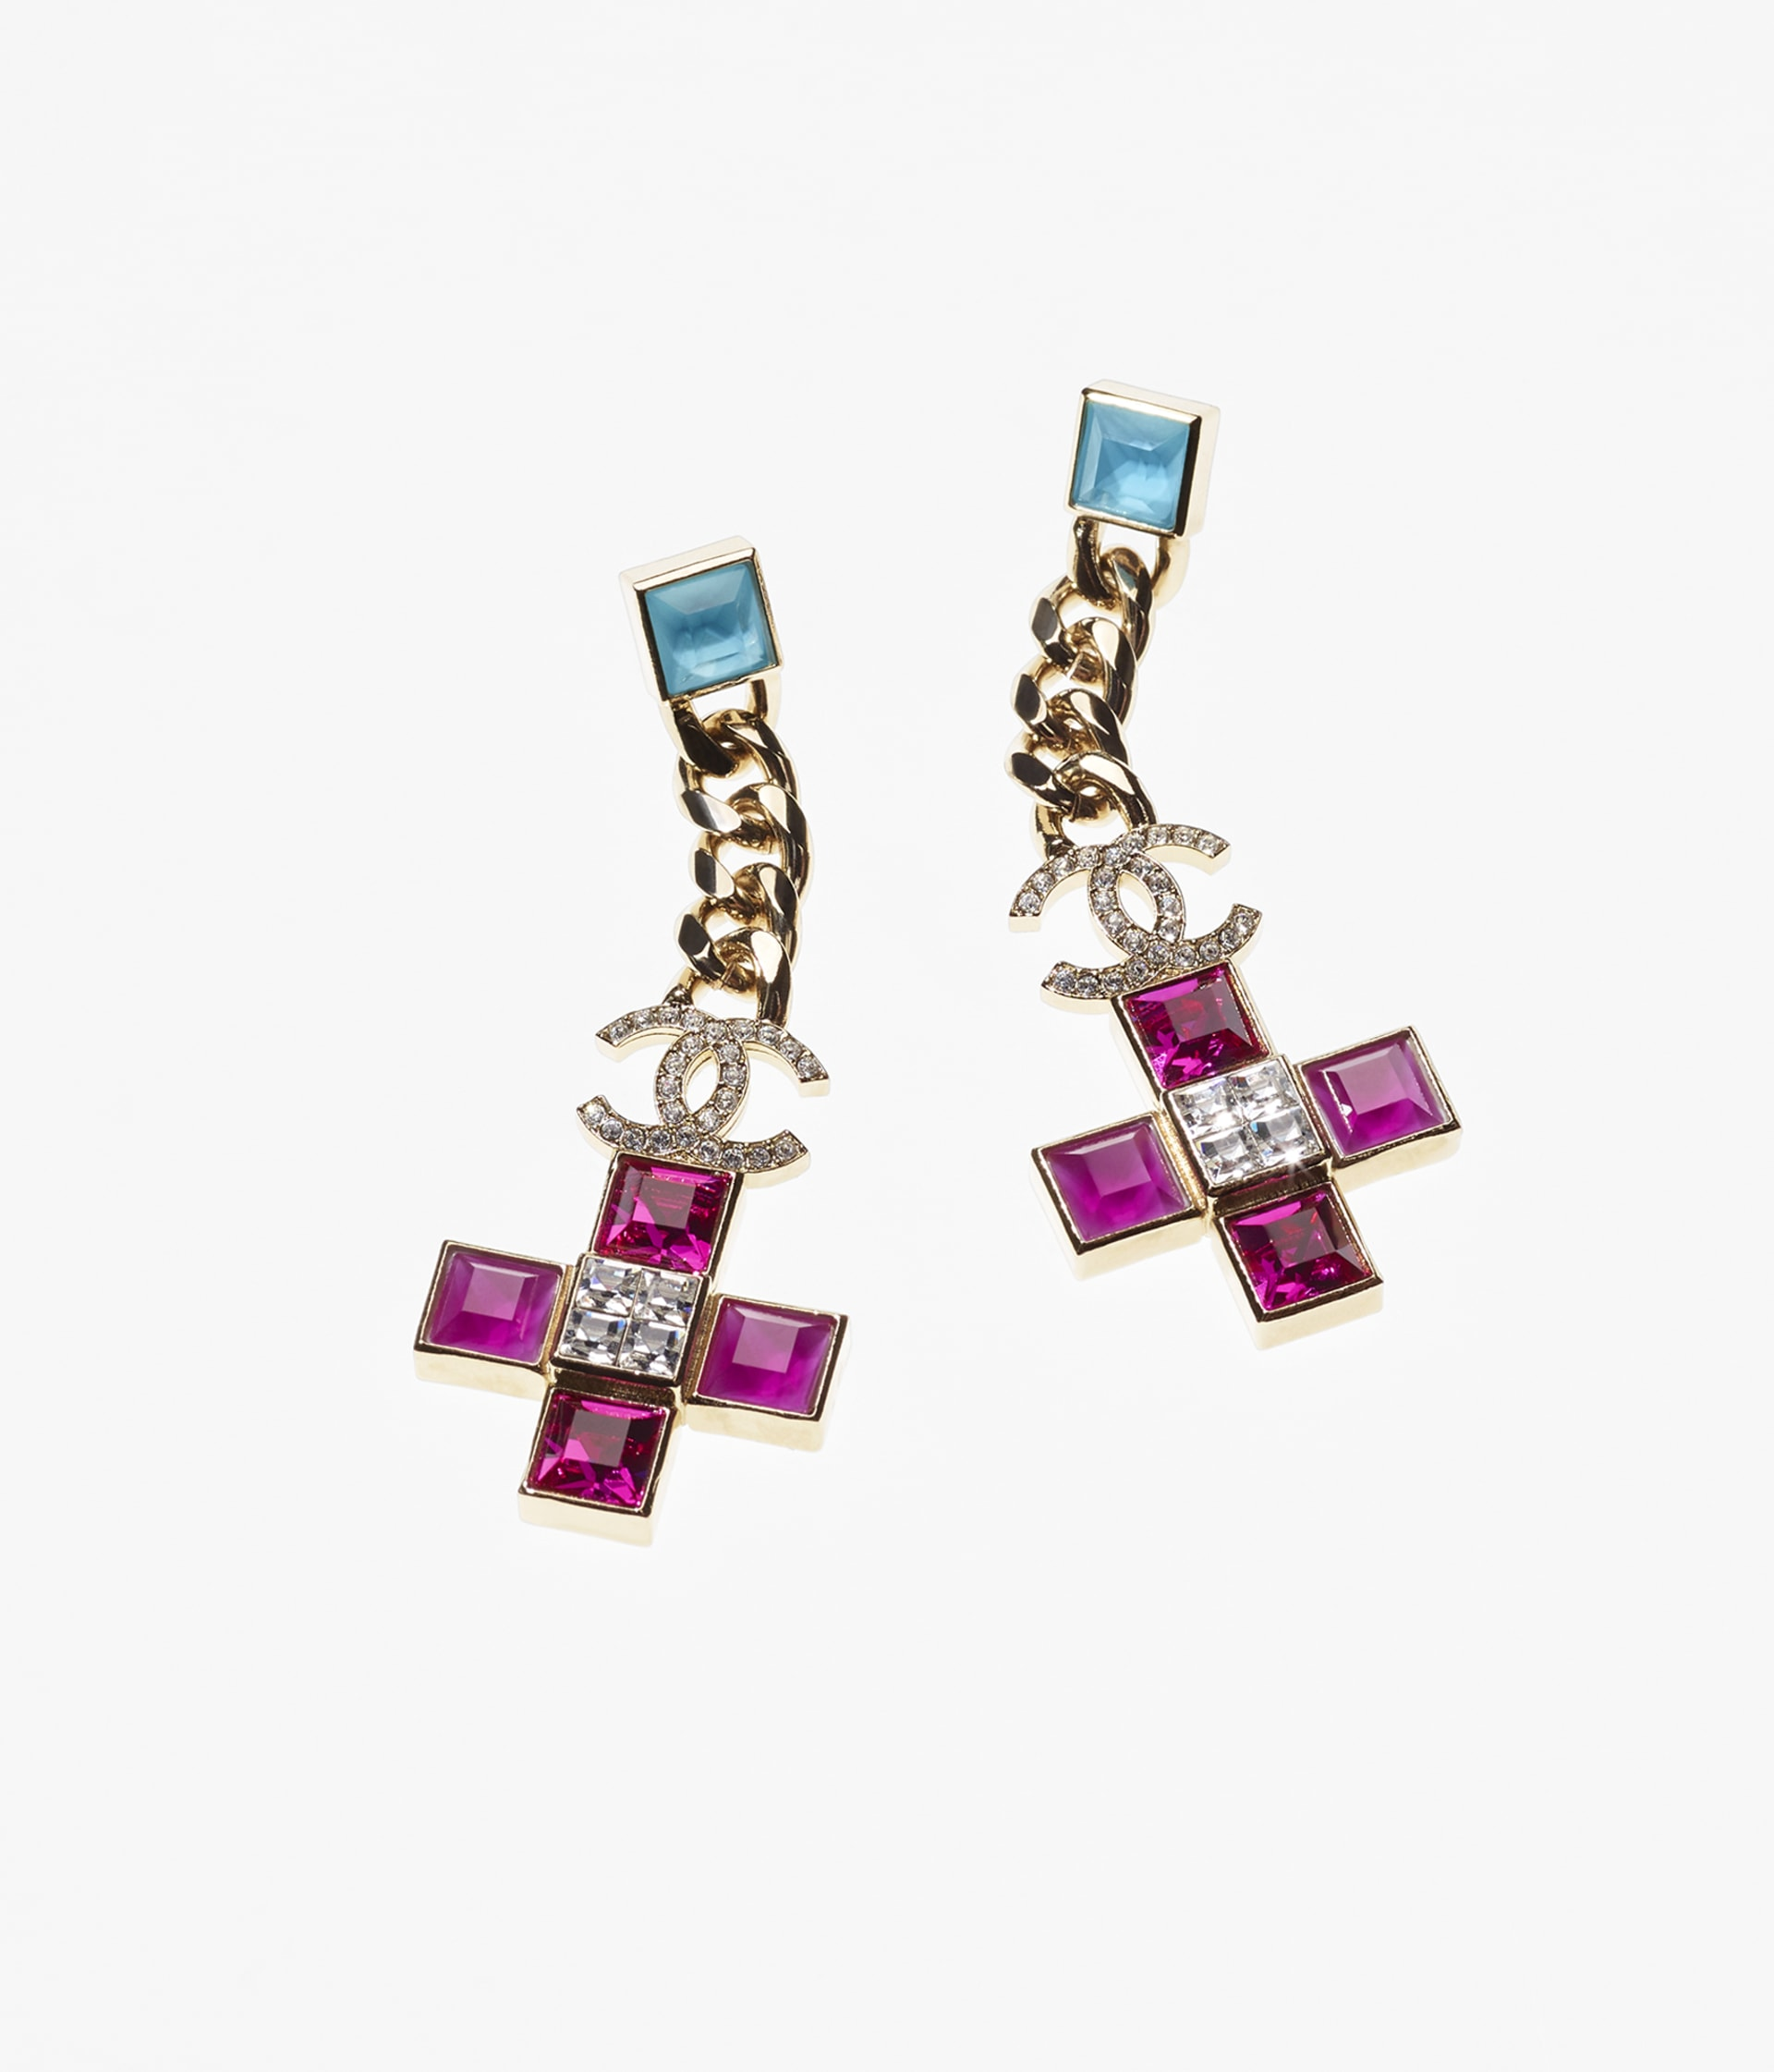 image 1 - Earrings - Metal & Strass - Gold, Fuchsia, Blue & Crystal